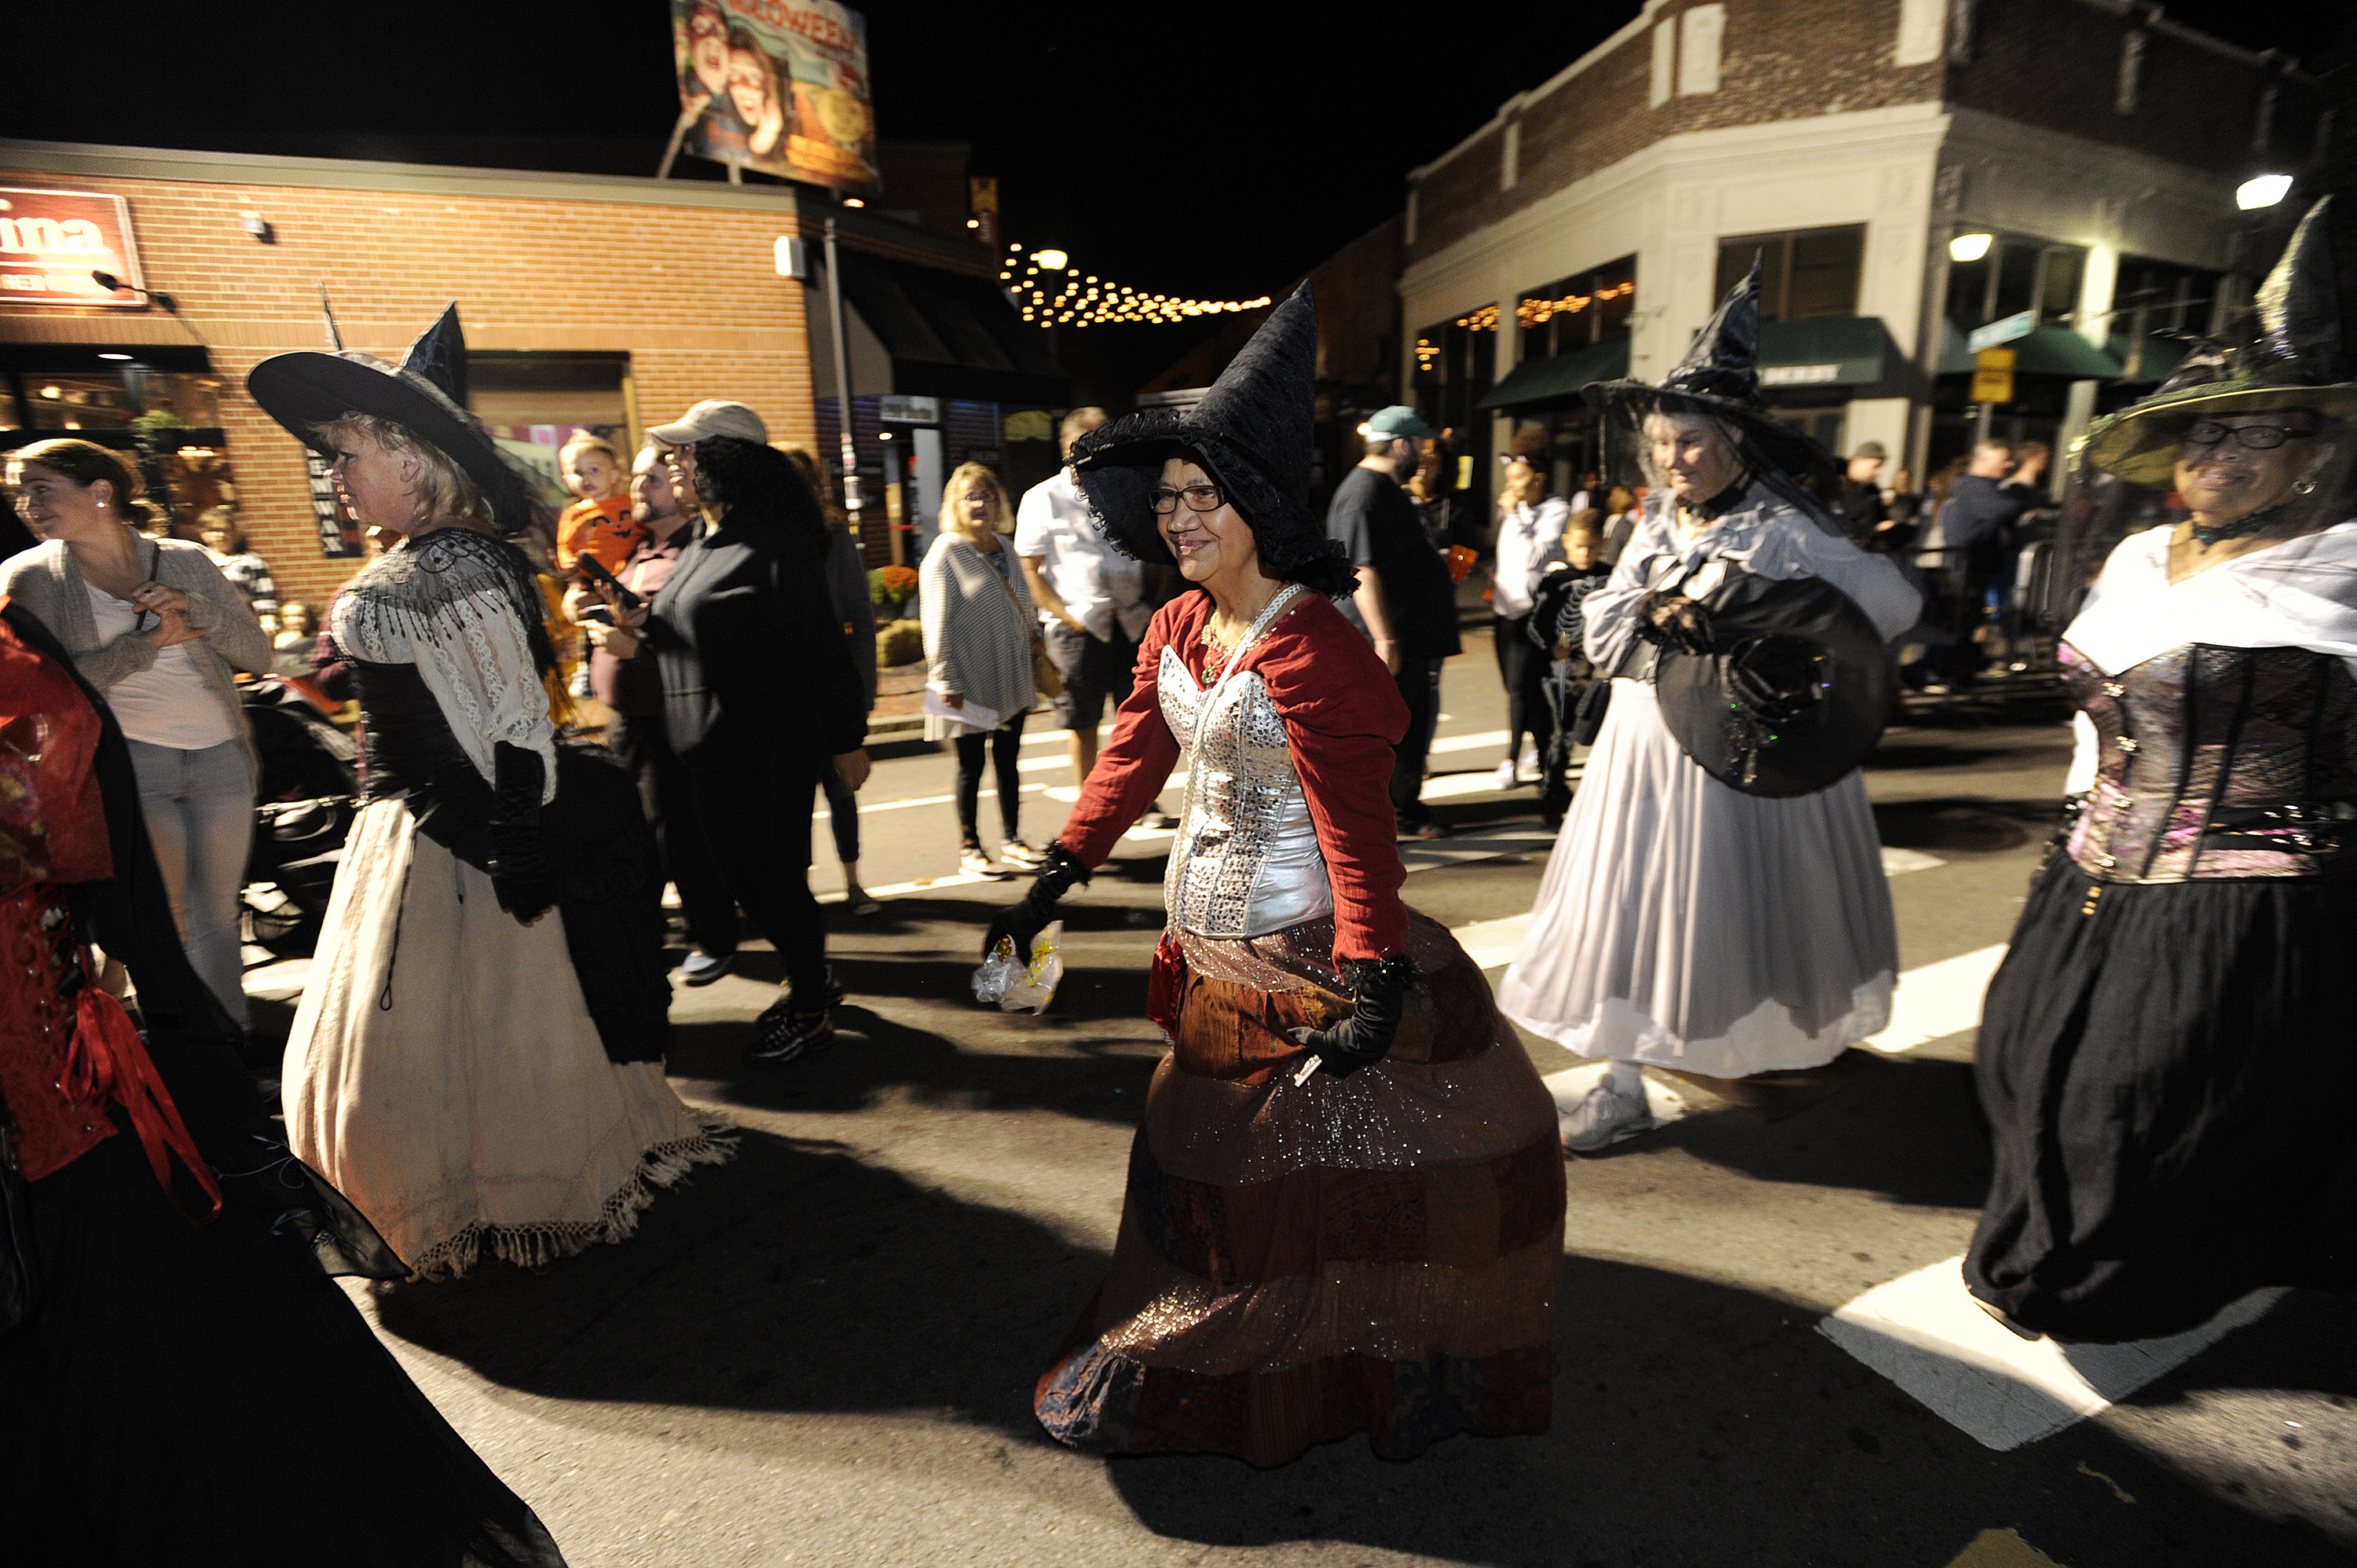 Witches make their way down the parade route during the 23rd Annual Salem Chamber of Commerce Haunted Happenings Grand Parade, which launches the Halloween season in Salem, Massachusetts, on October 4, 2018. JOSEPH PREZIOSO/AFP/Getty Images